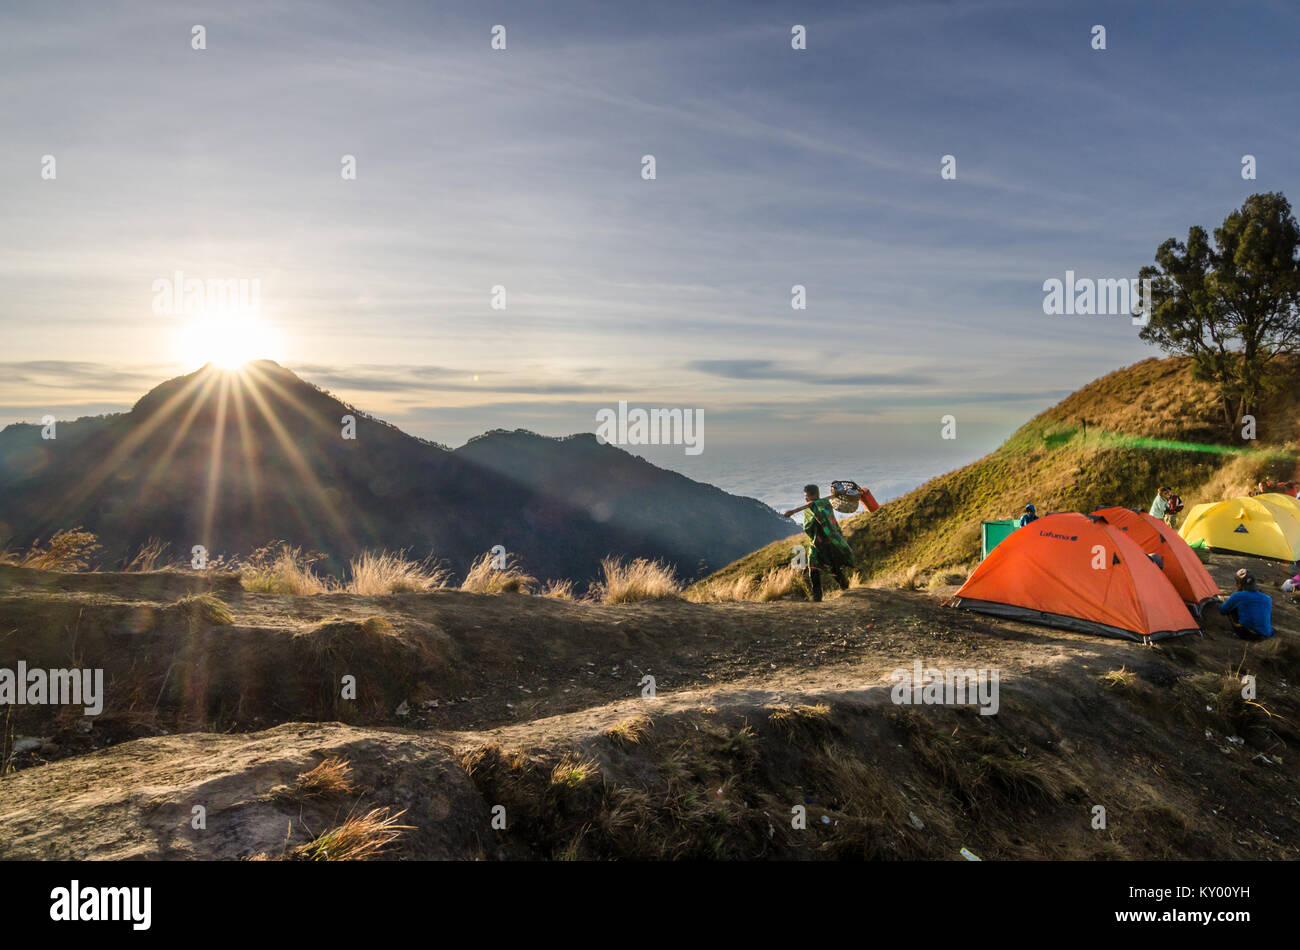 Porter of Mount. Rinjani helping hiker to carry stuff. The mountain is the second highest volcano in Indonesia and - Stock Image